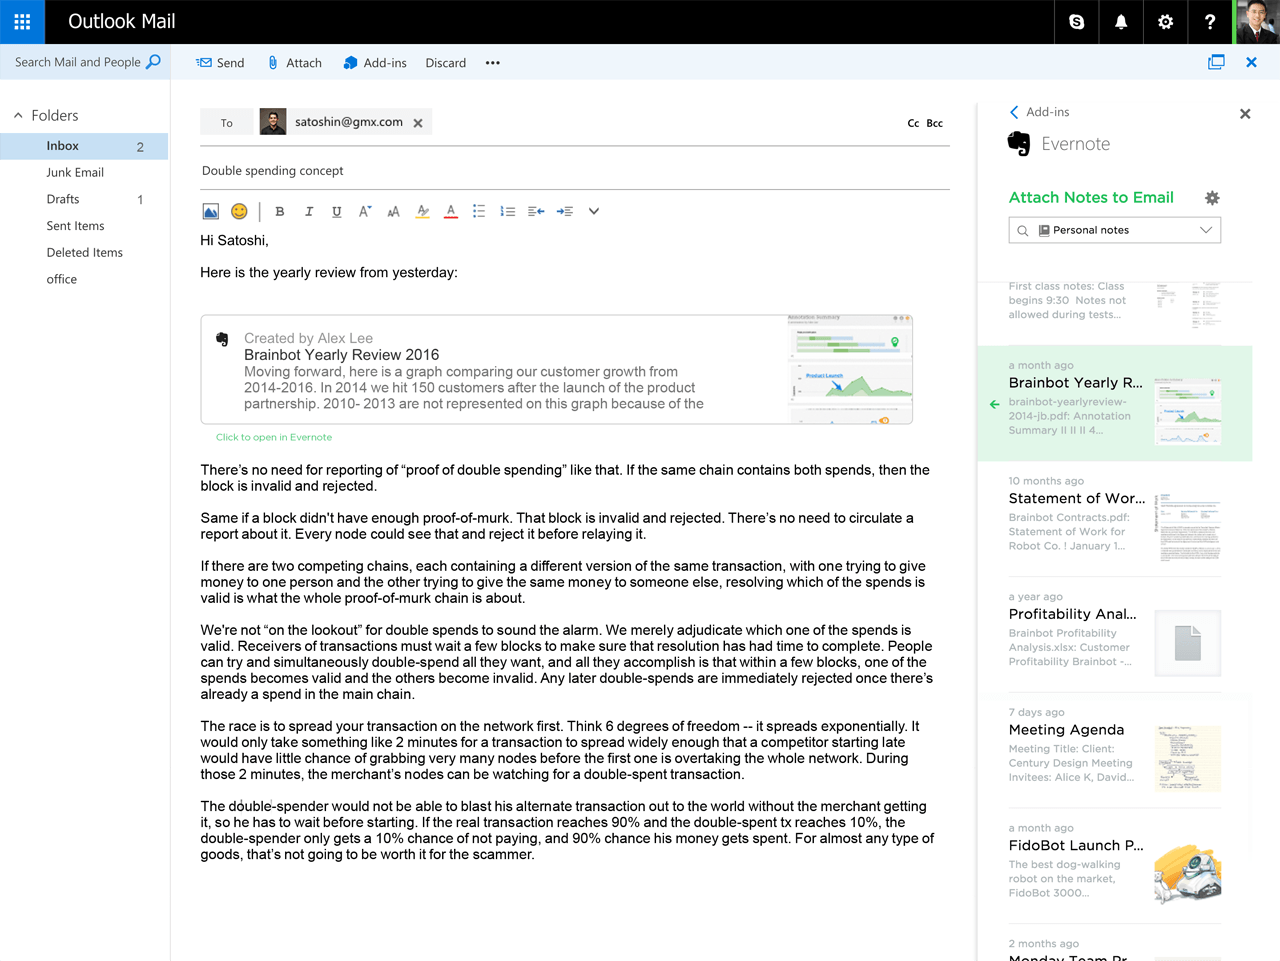 Evernote Notizen als Anhang in Outlook einfügen